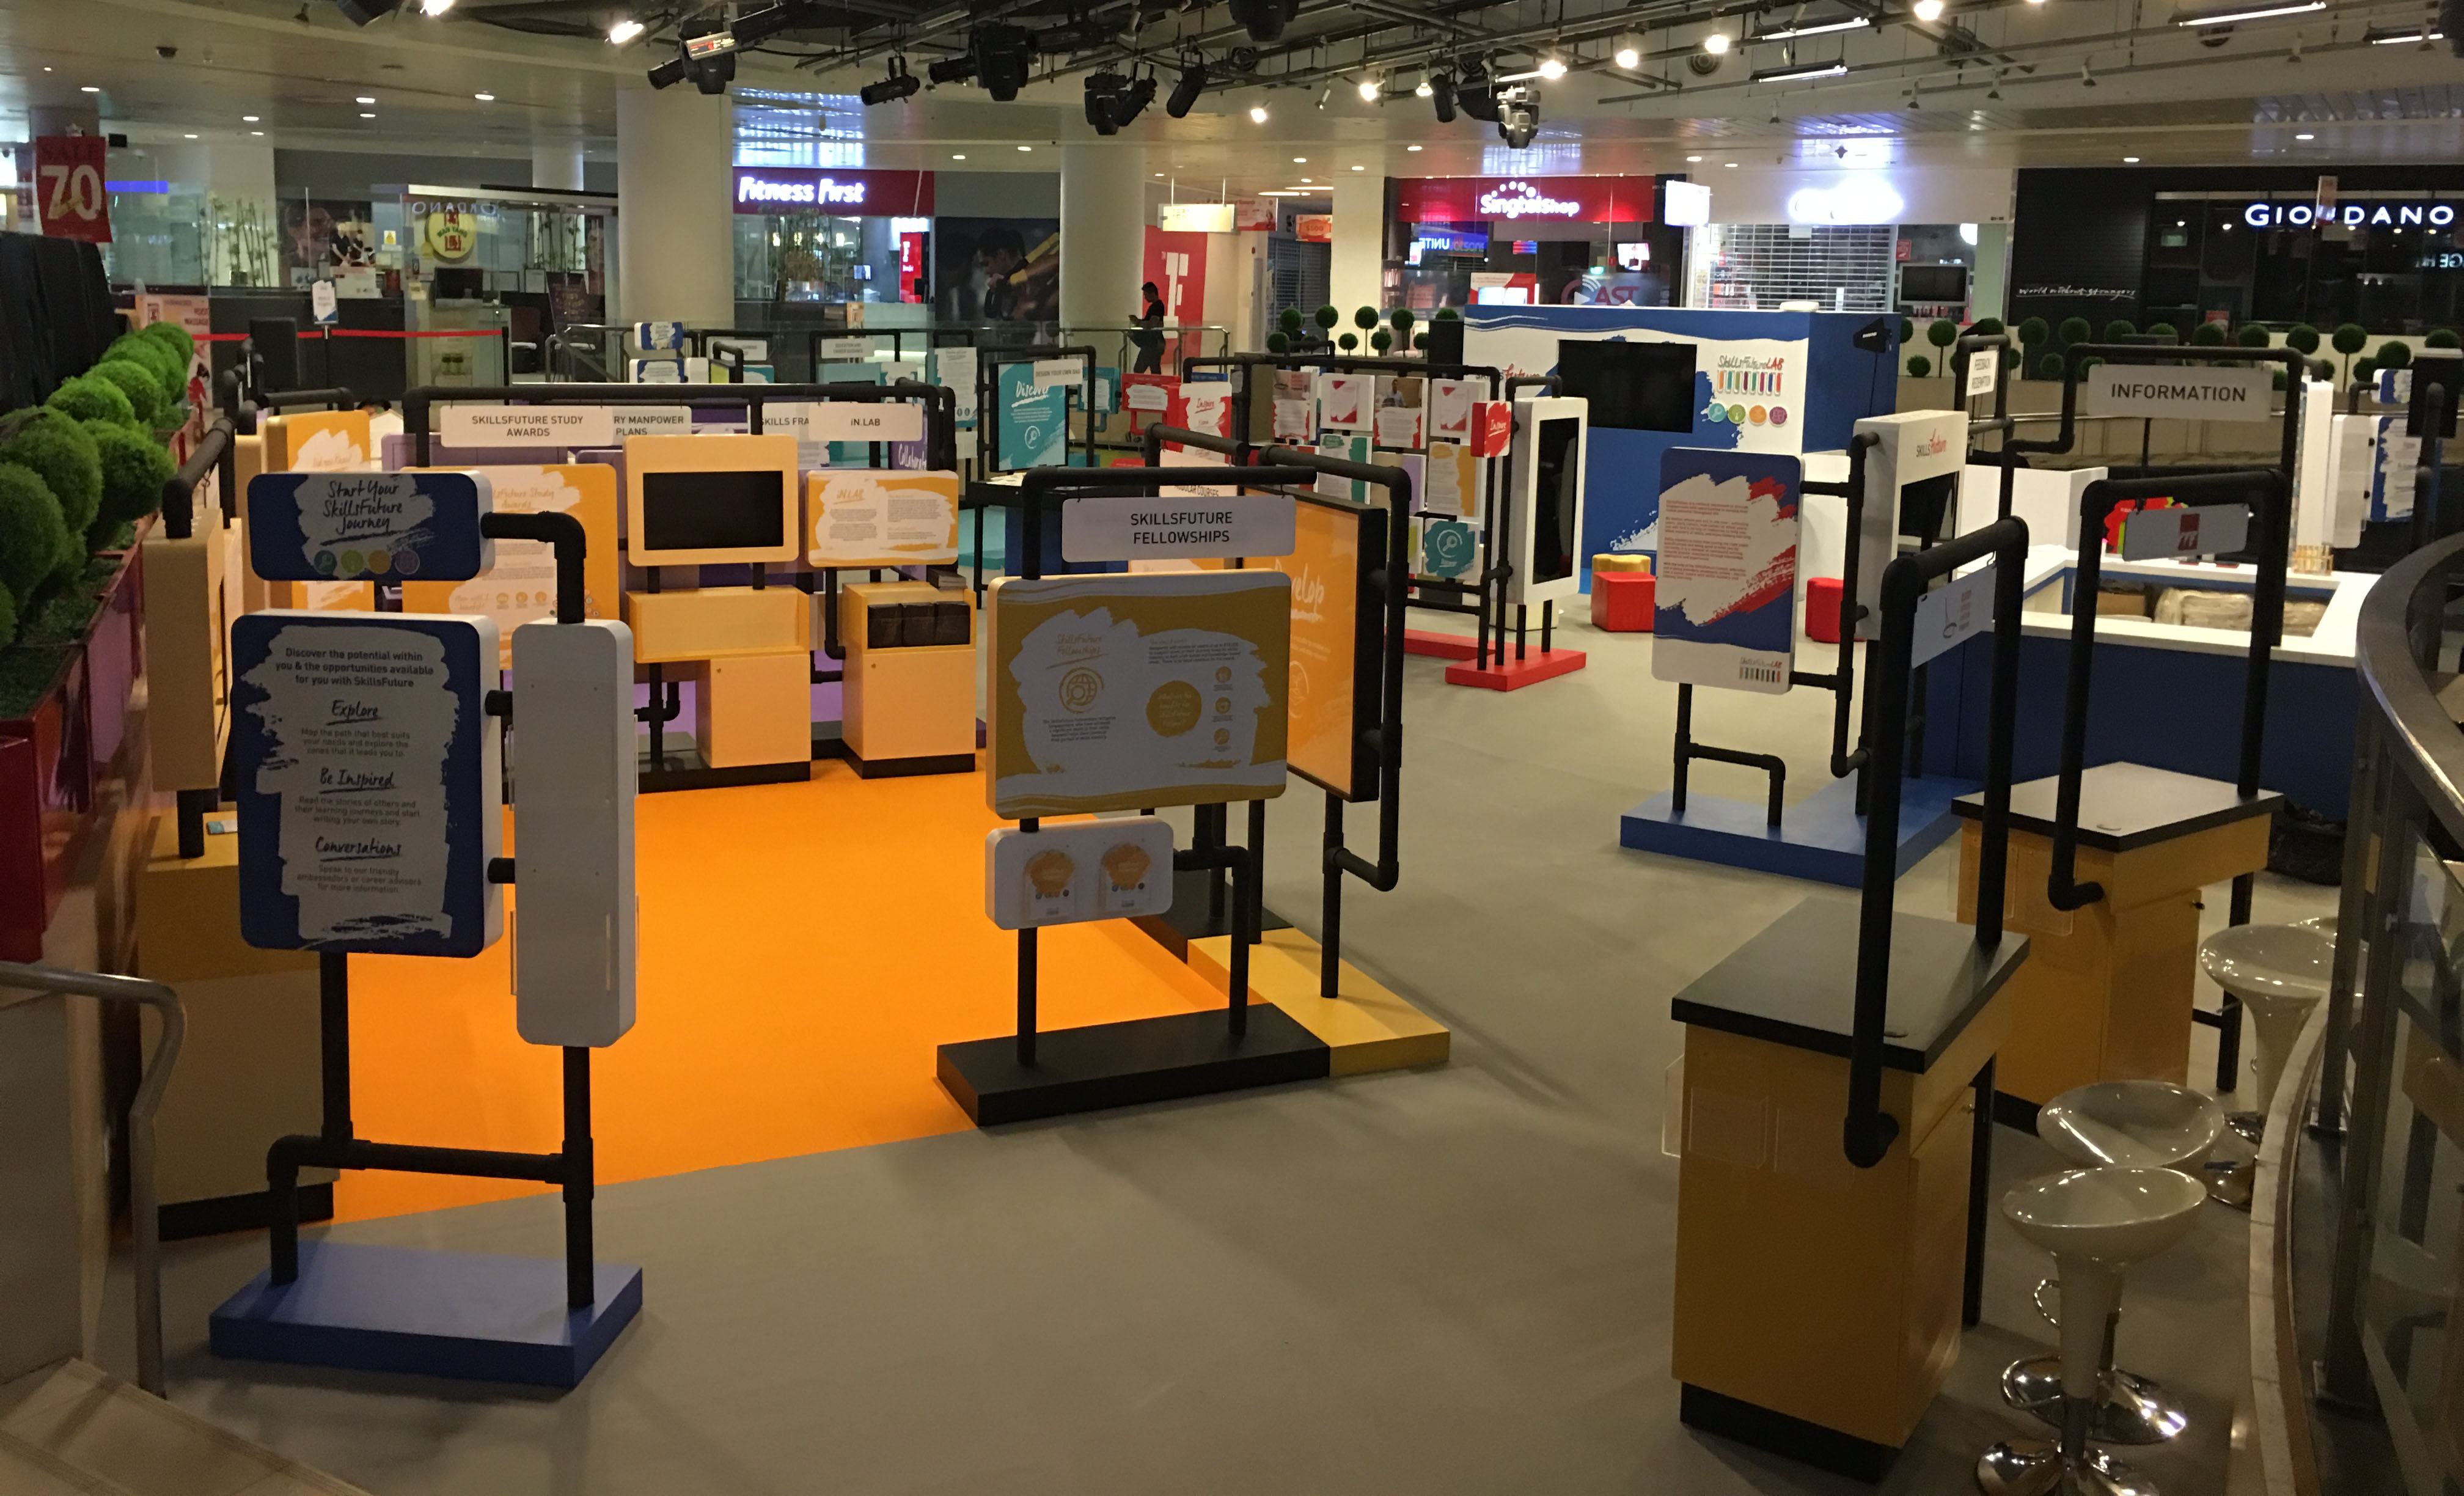 EXHIBITIONS & DISPLAY BOOTH